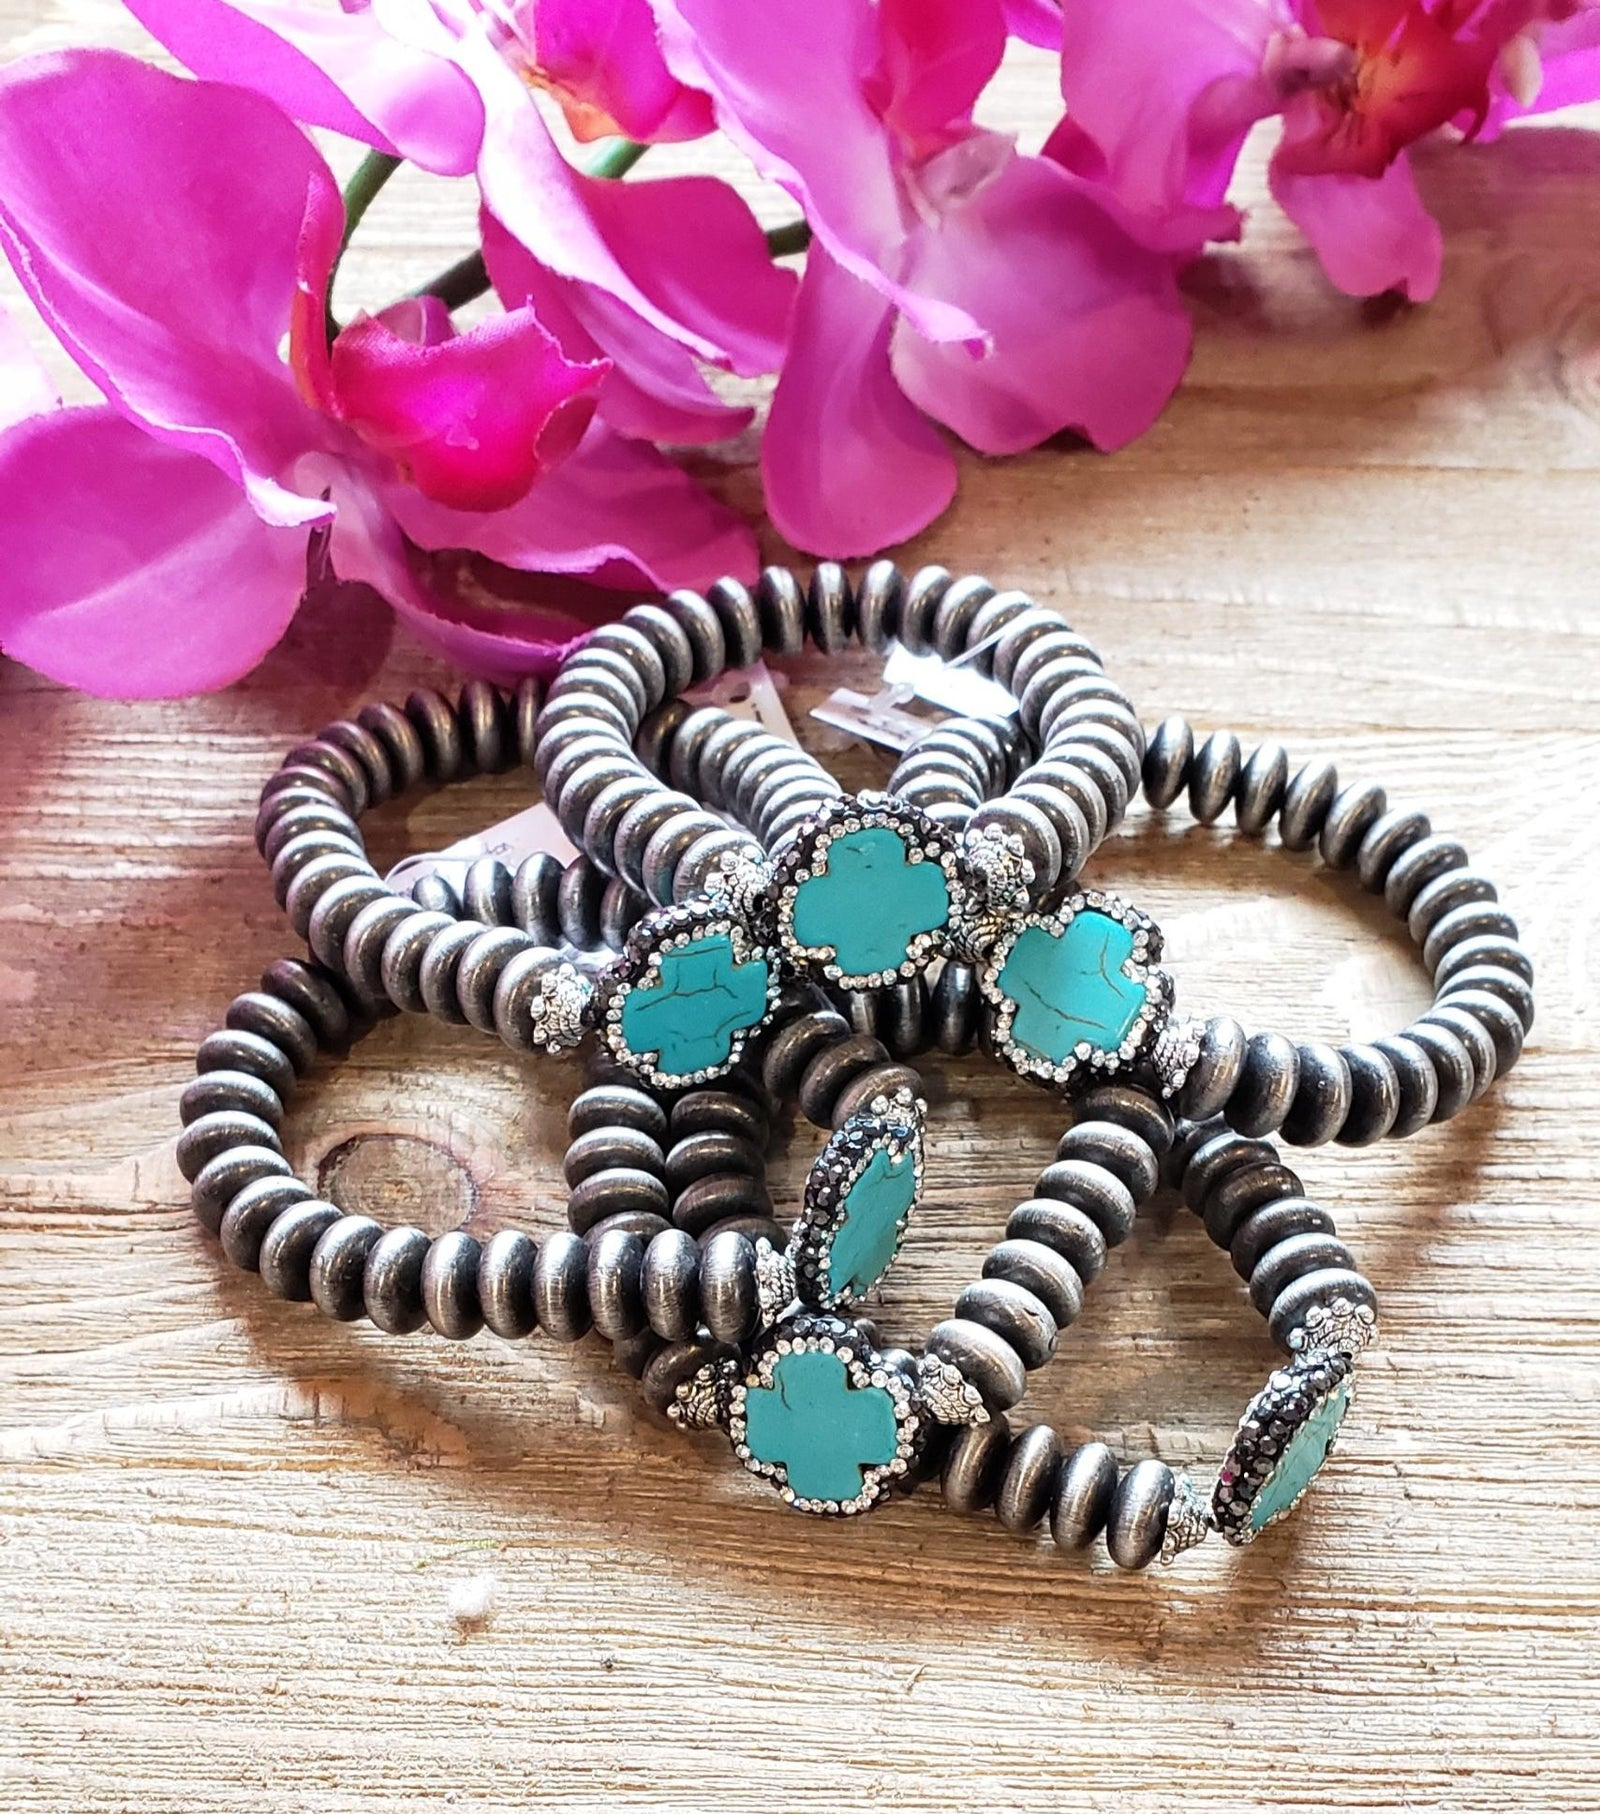 Silver beaded stretch bracelet with turquoise pave cross